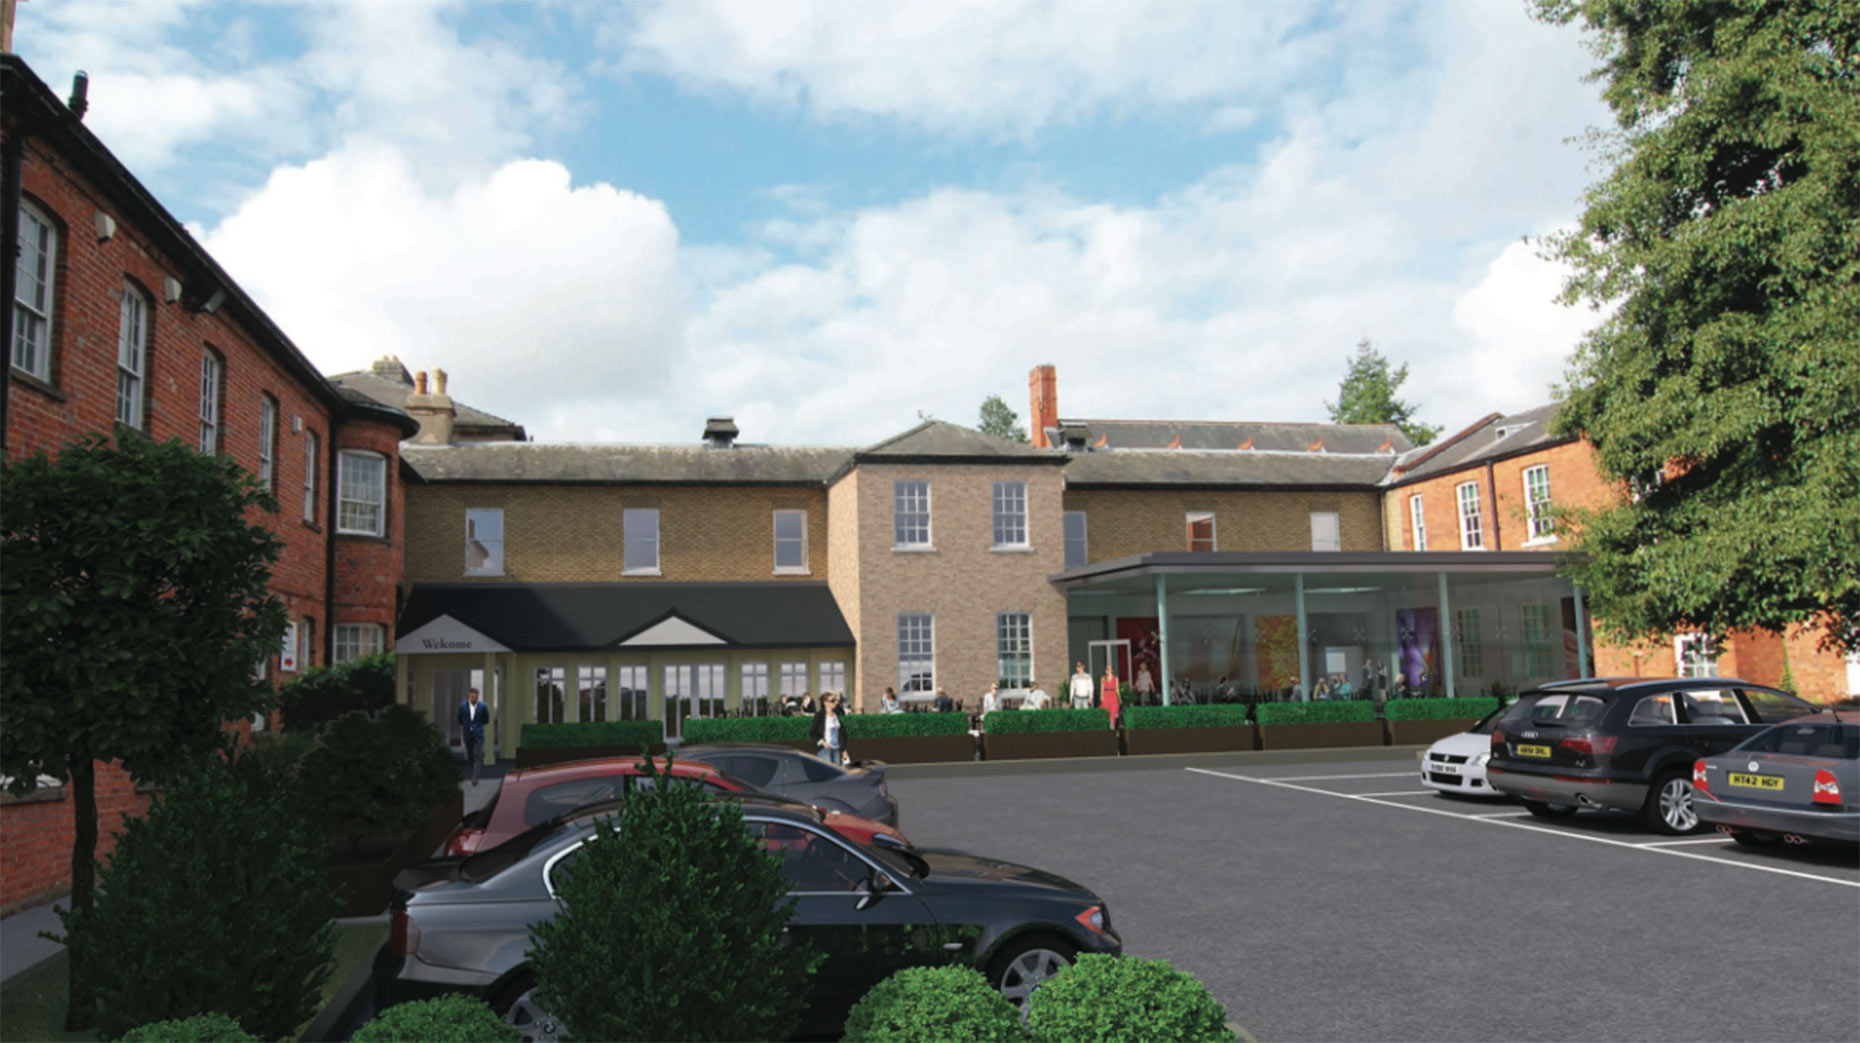 An artist's impression of how the East Wing of The Lawn would look under the proposals.